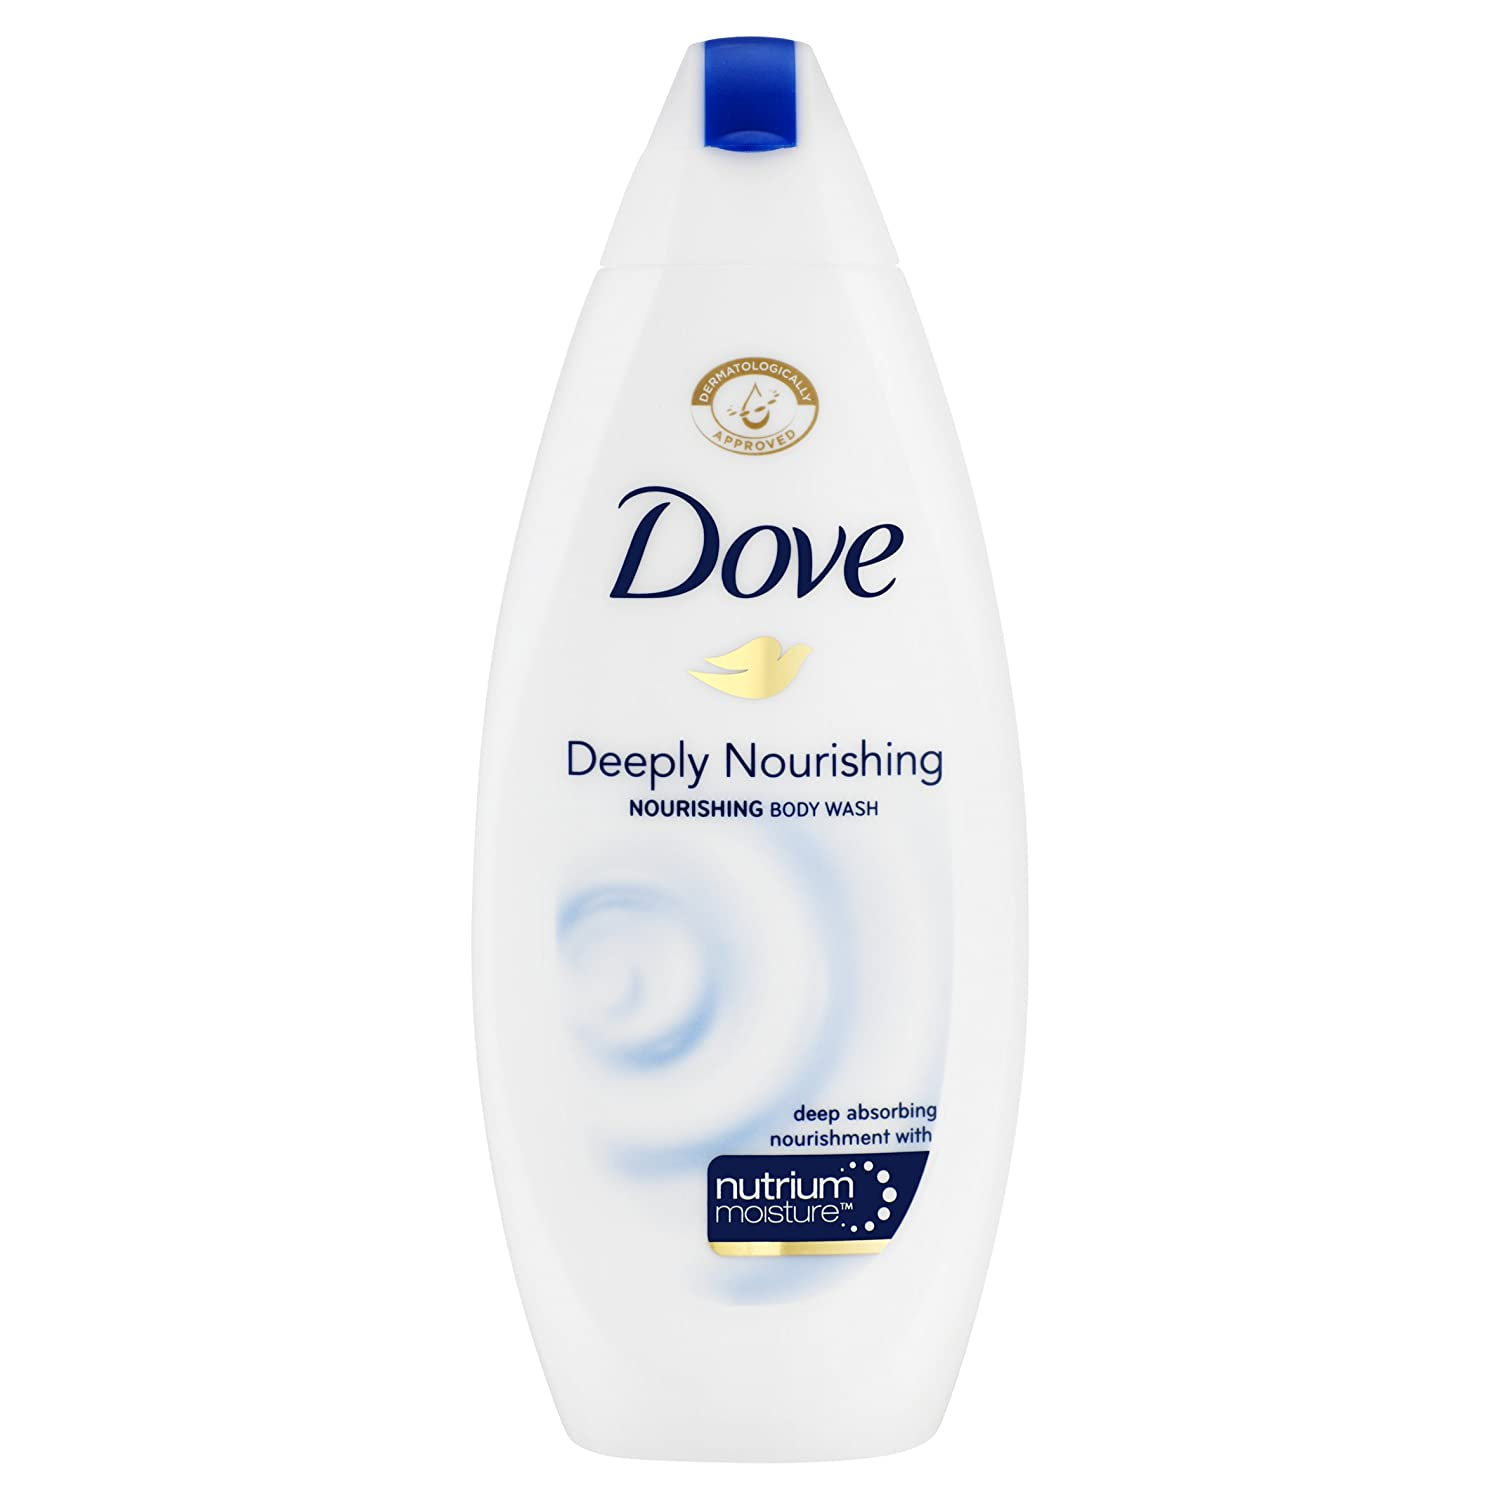 Dove Triple Moisturising Body Wash 210 ml - Pack of 3 Unilever 8699963